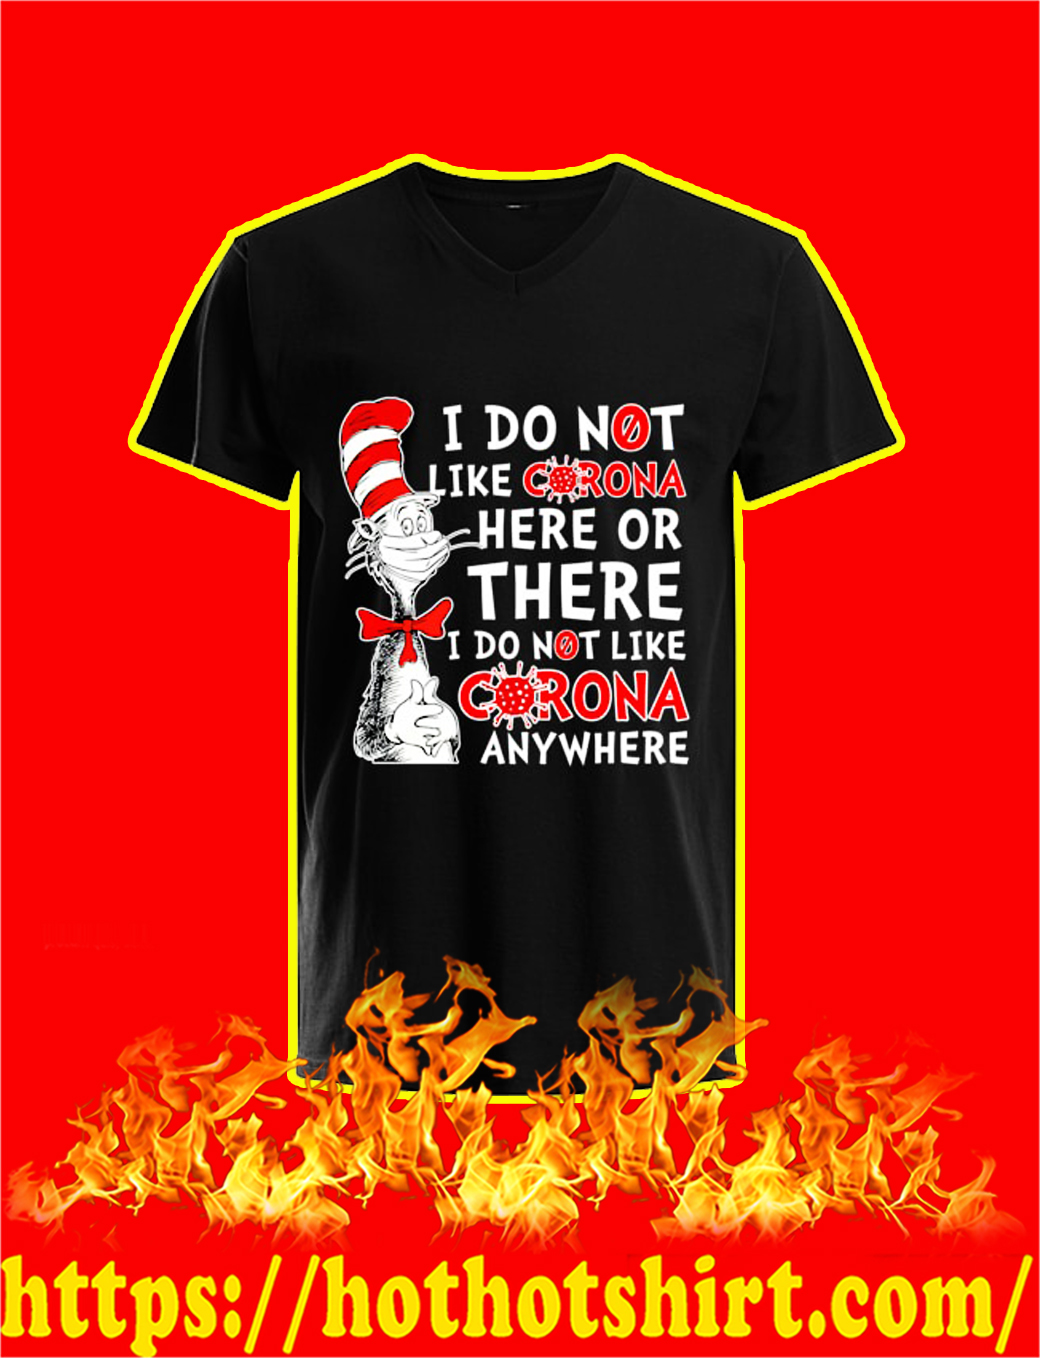 Dr Seuss I Do Not Like Corona Here Or There v-neck